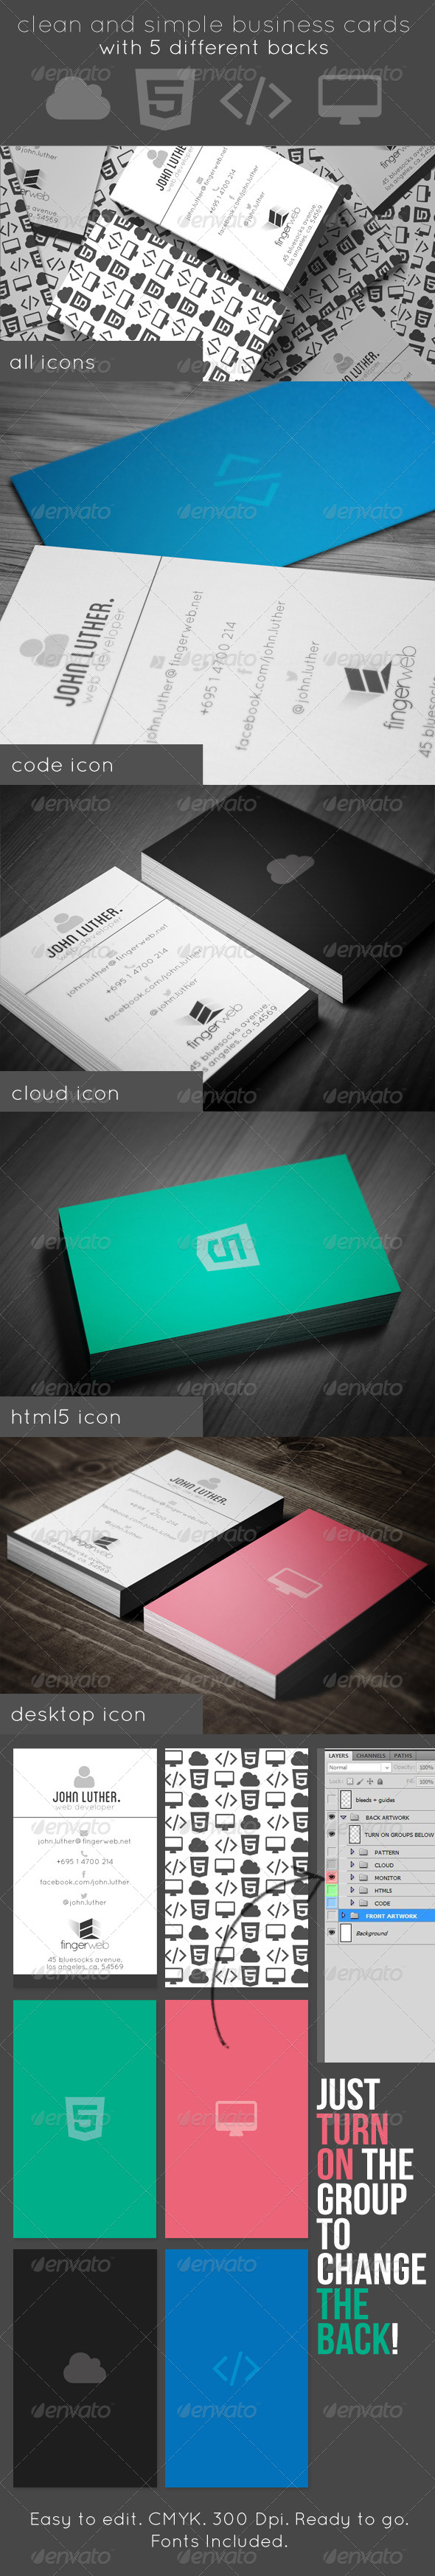 GraphicRiver Icon Business Cards 5 Backs 5189118